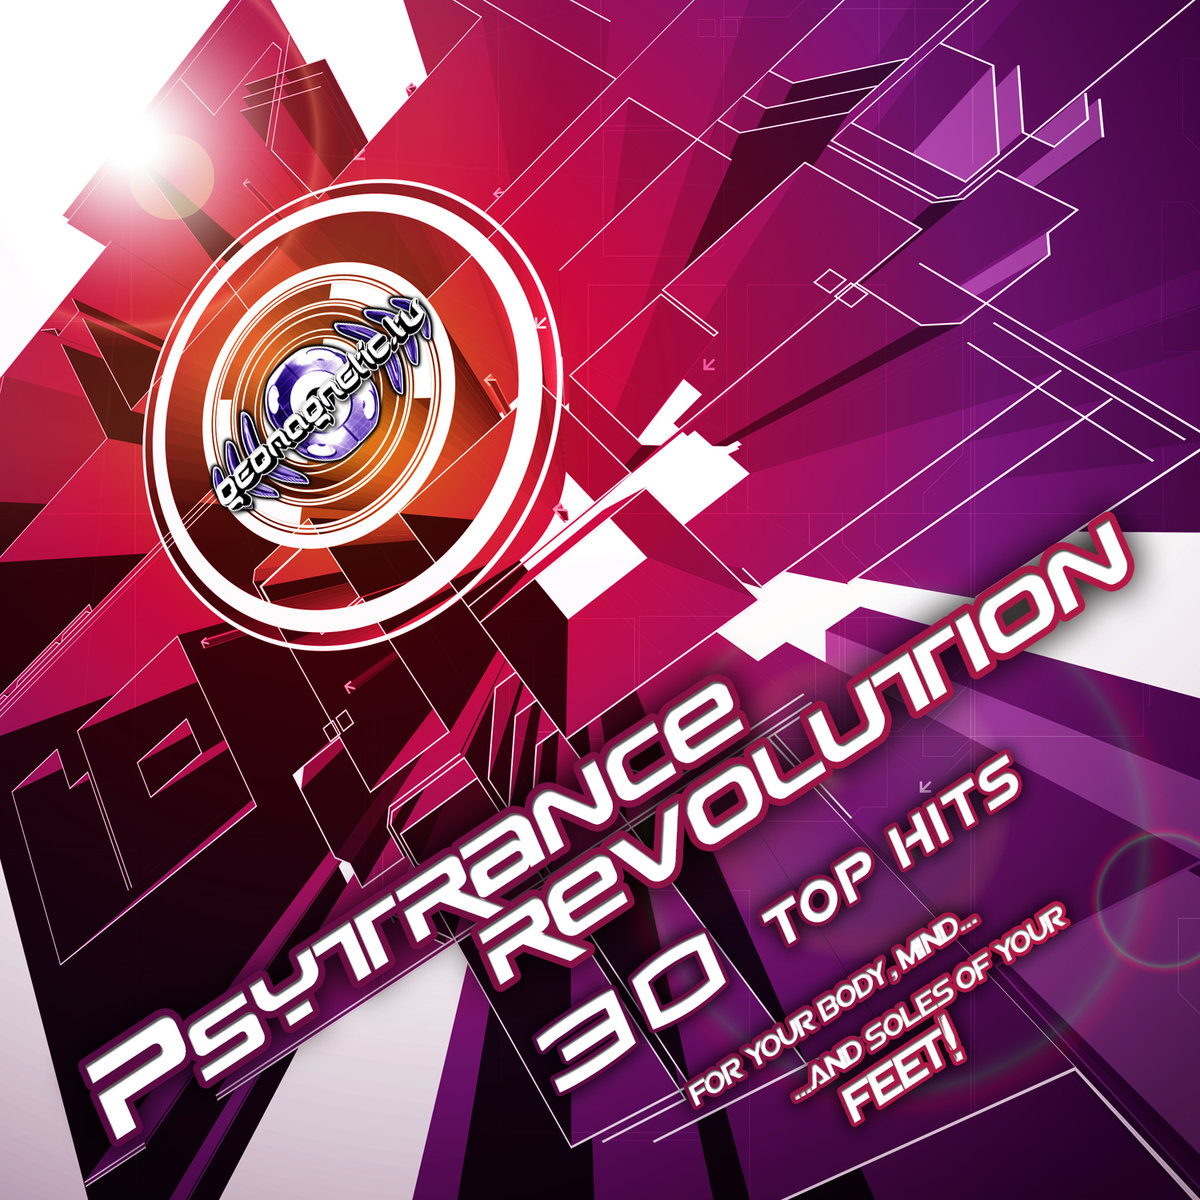 Phoenix - Under attack @ 'Various Artists - Psytrance Revolution (30 Top Hits)' album (electronic, goa)